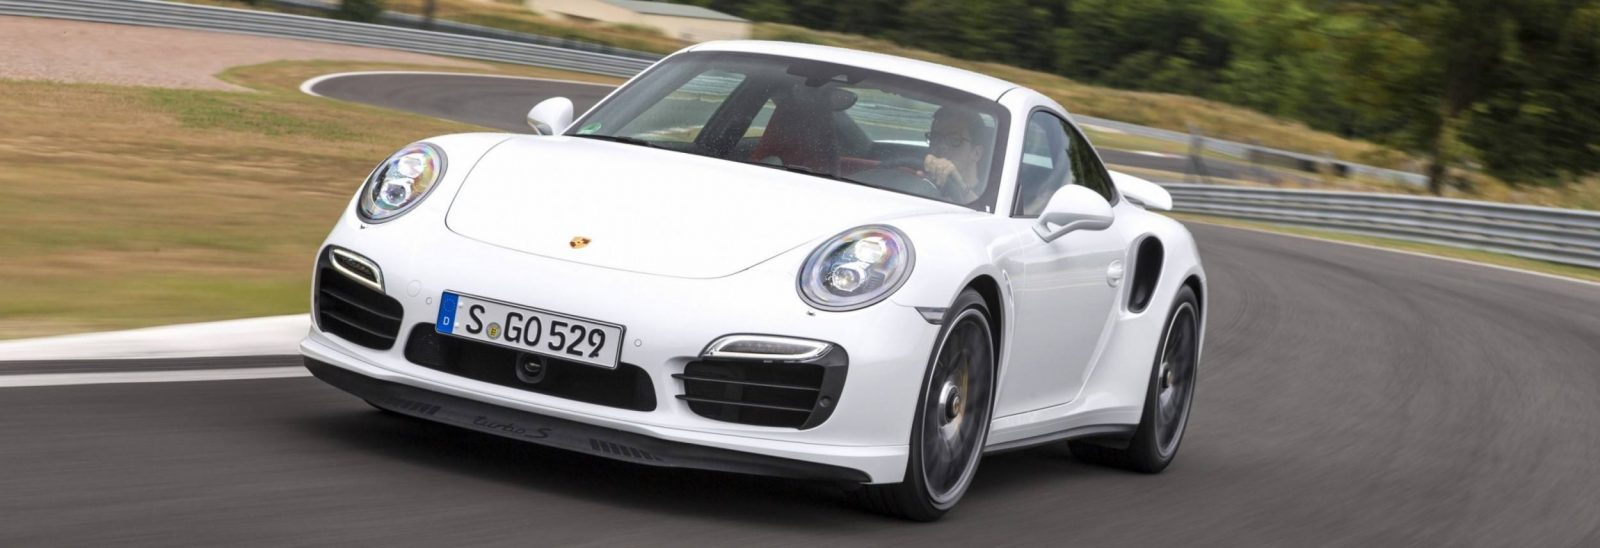 2014 Porsche 911 Turbo S In 34 Poster Size Photos